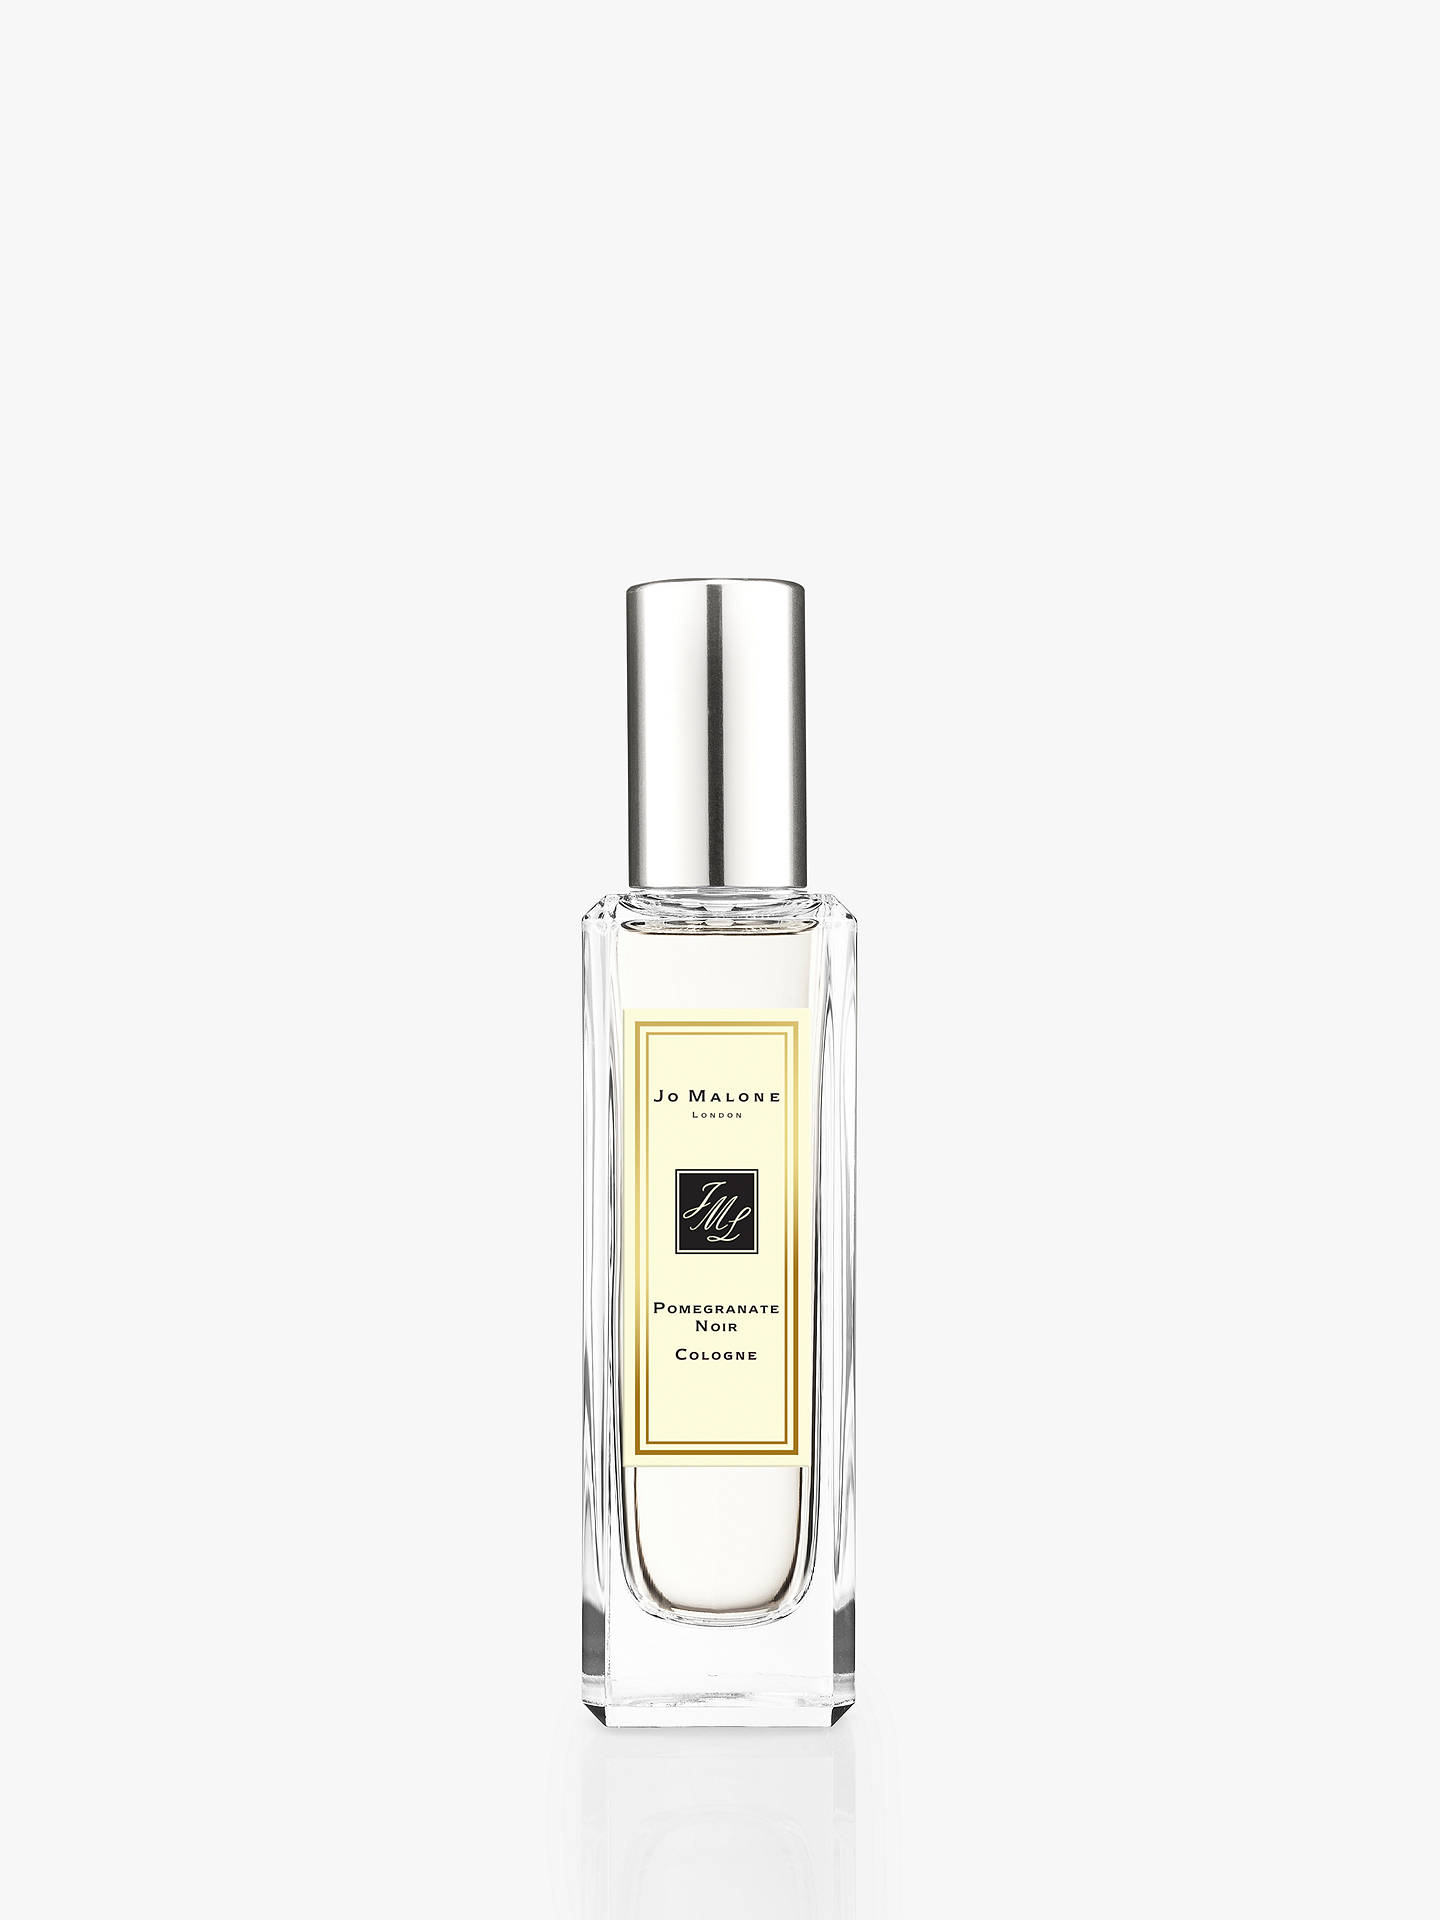 BuyJo Malone London Pomegranate Noir Cologne, 30ml Online at johnlewis.com